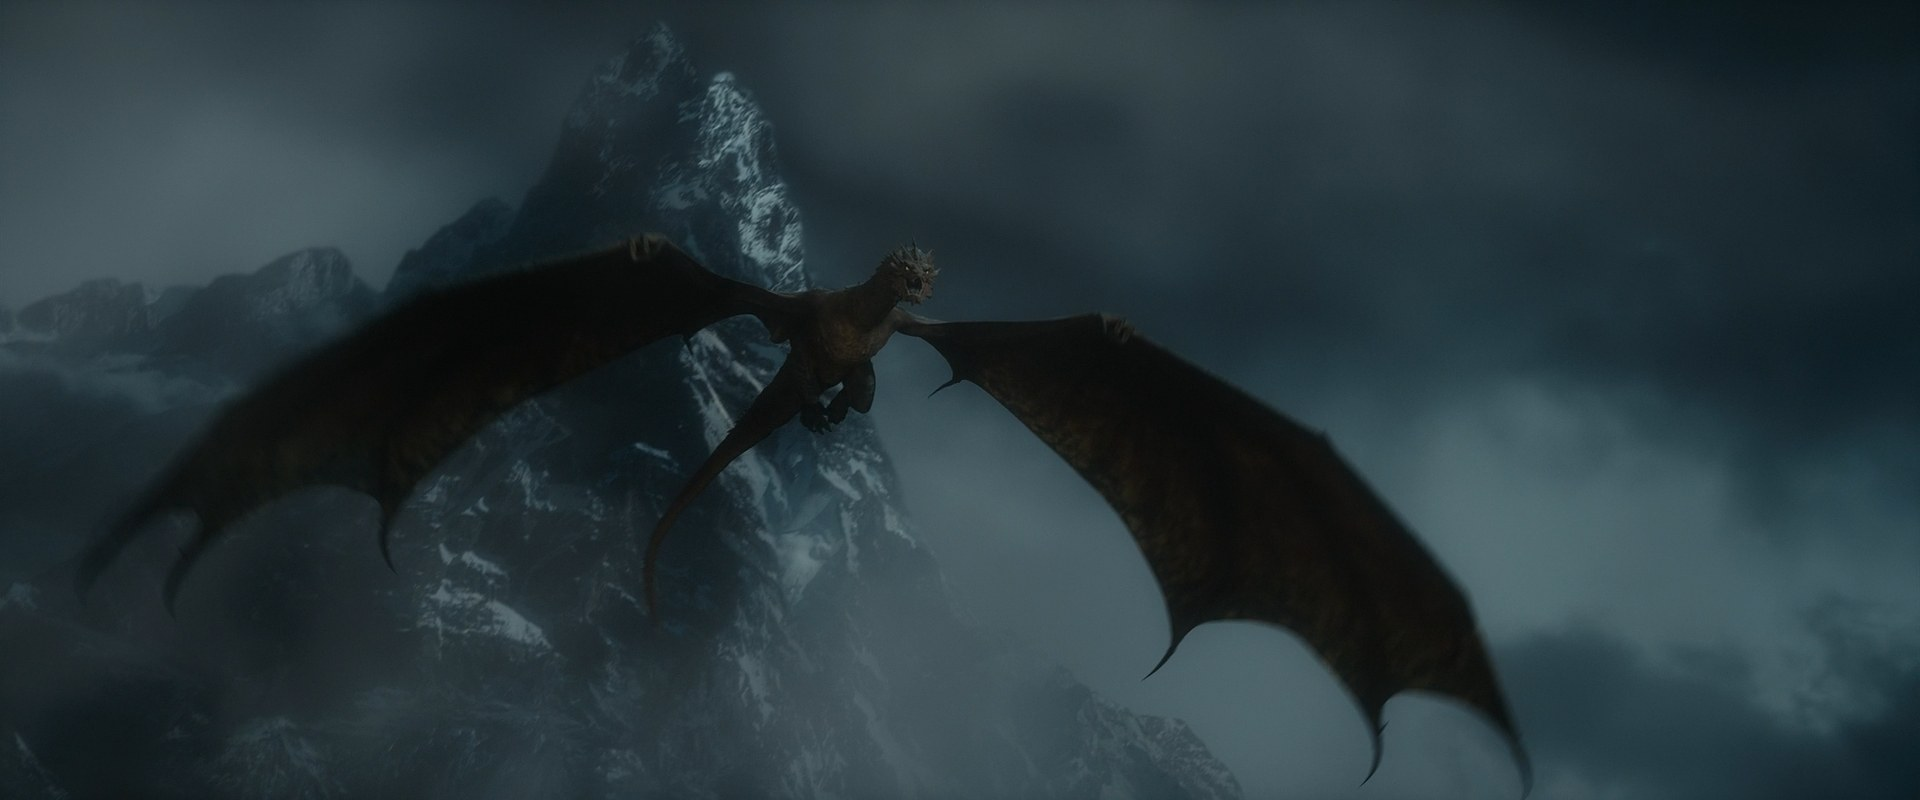 image smaug in flight by jd1680ad7c3vz8jpg the one